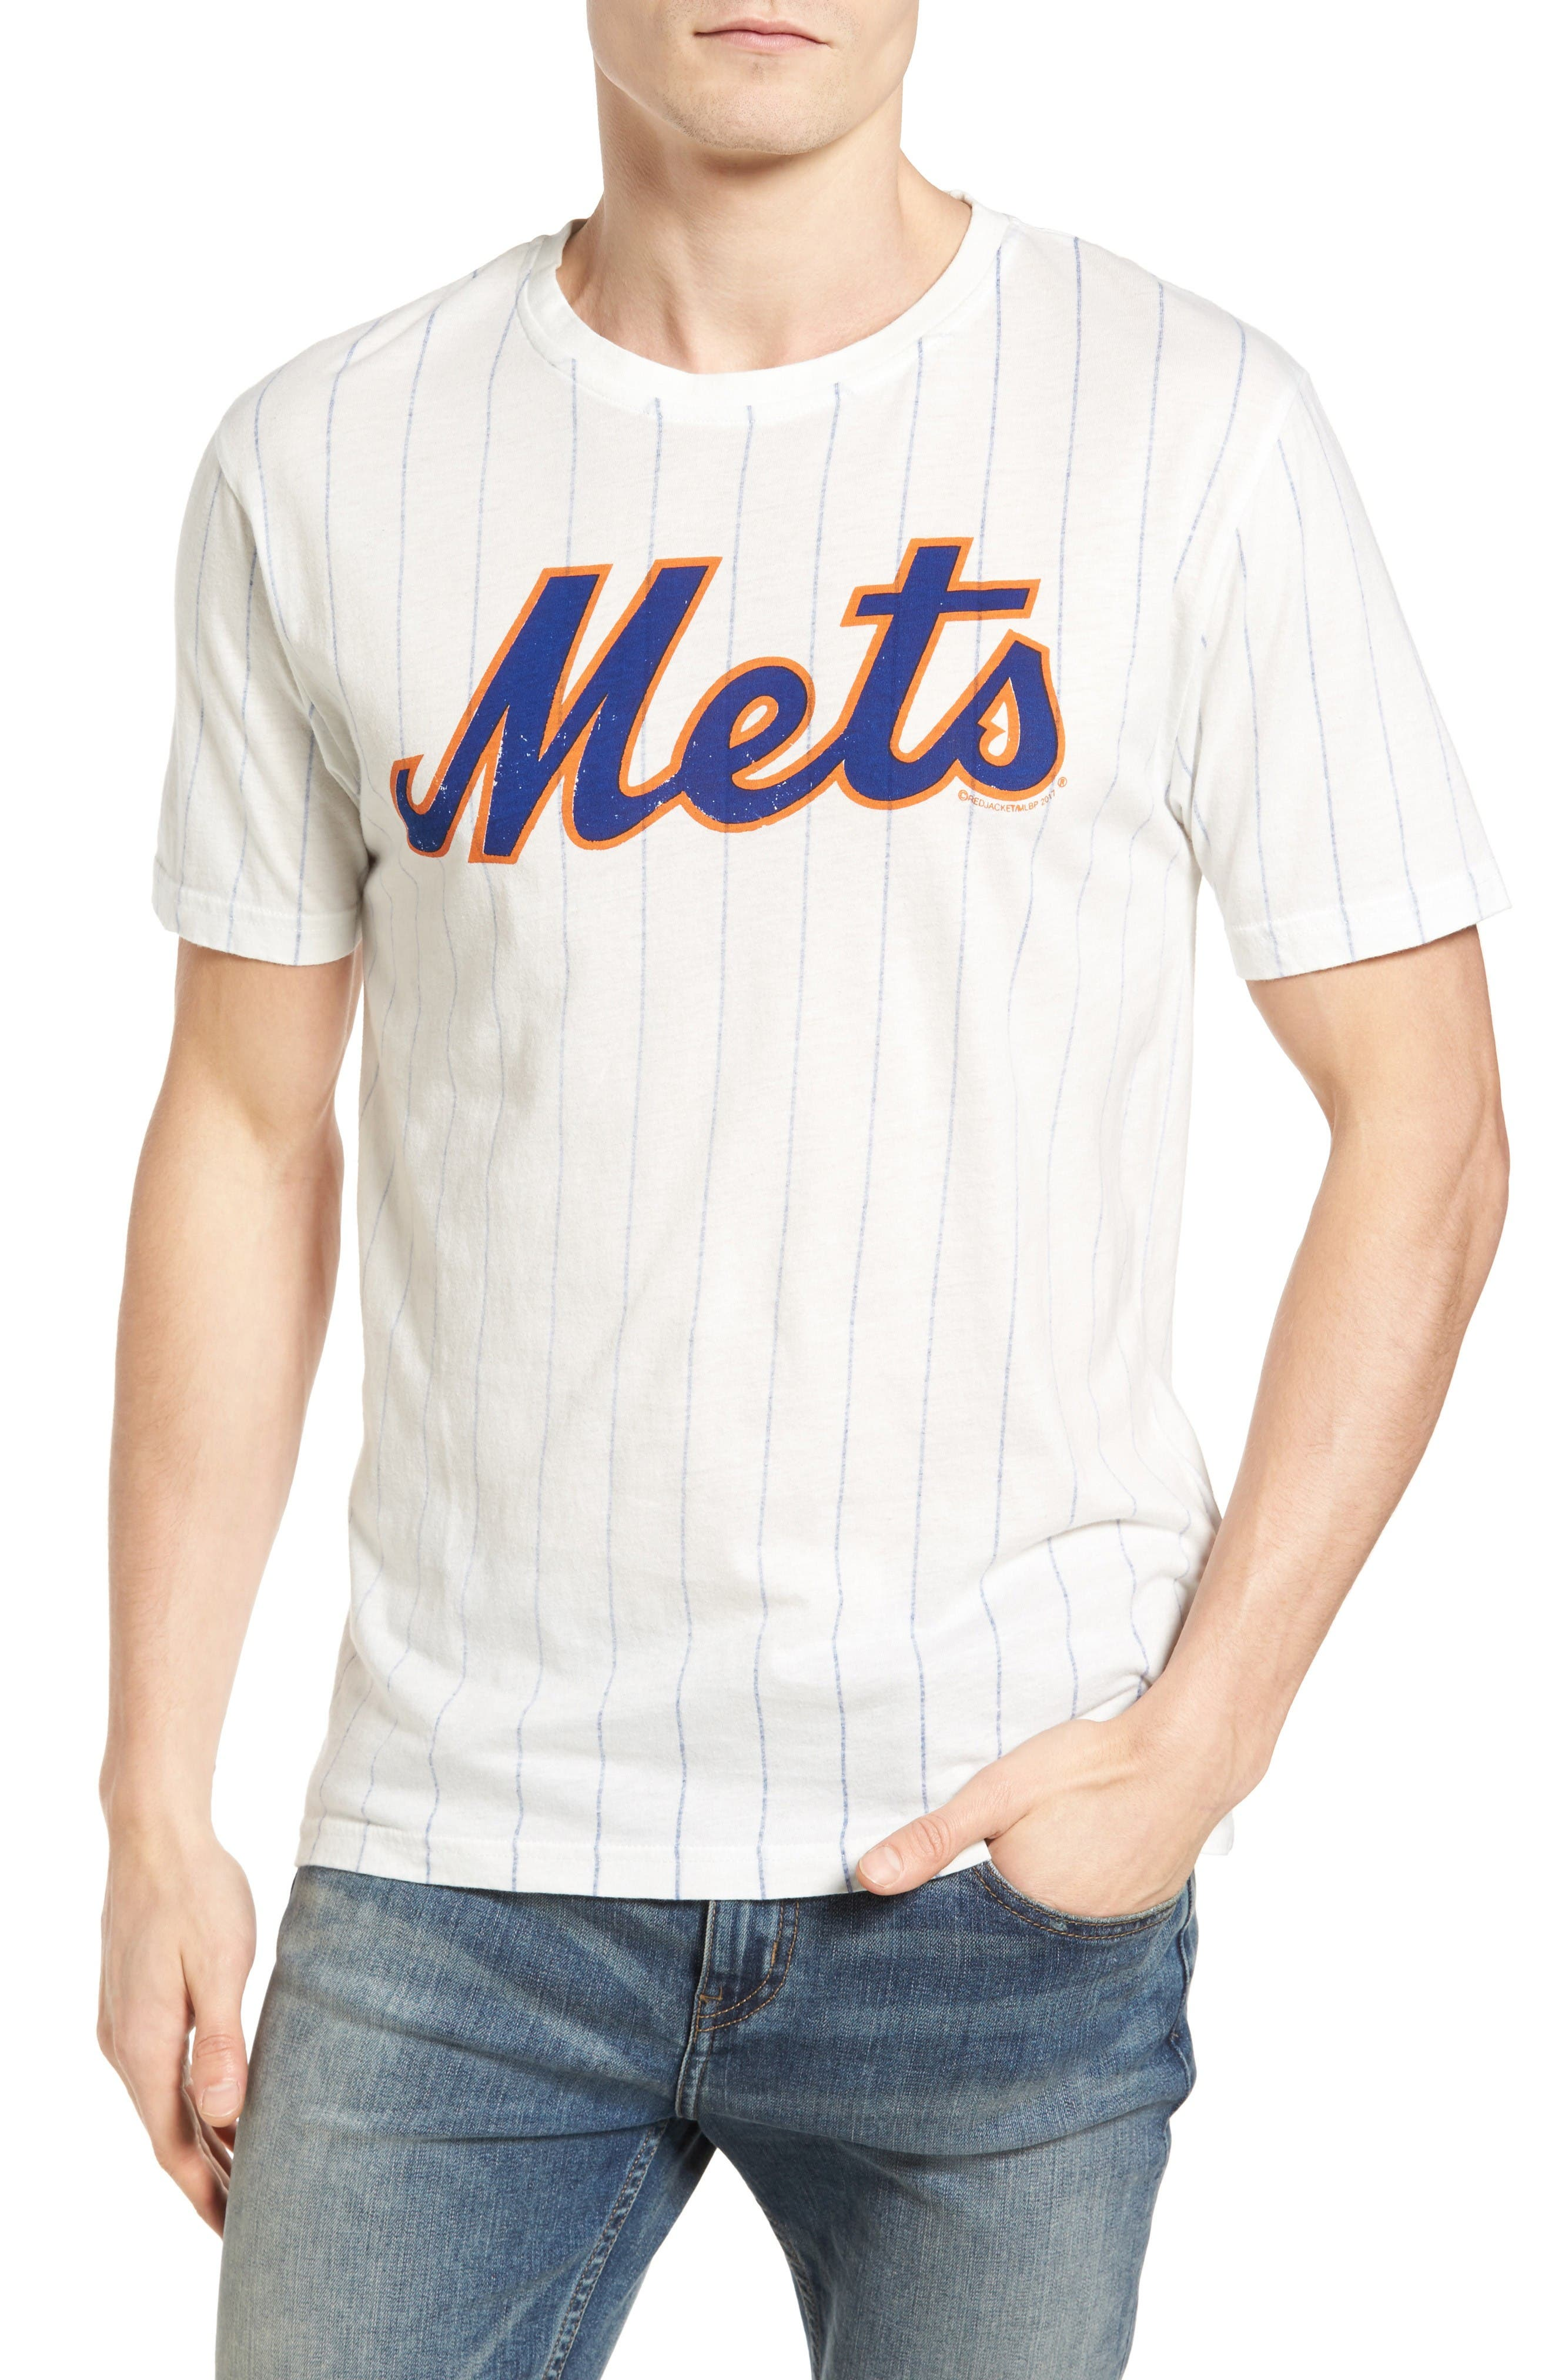 Alternate Image 1 Selected - American Needle Brass Tack New York Mets T-Shirt